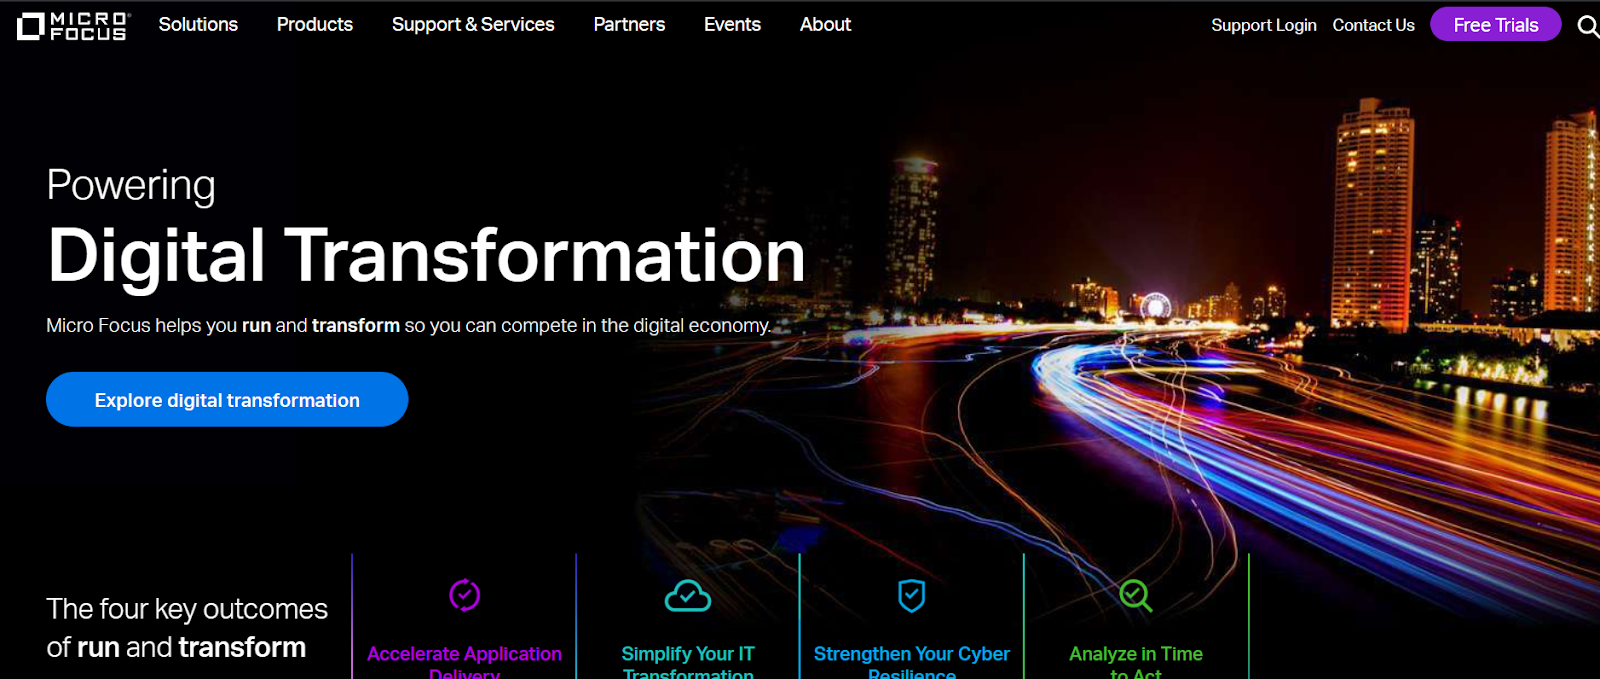 Micro Focus is one of the best niche players in Application Performance Monitoring Tools in the market